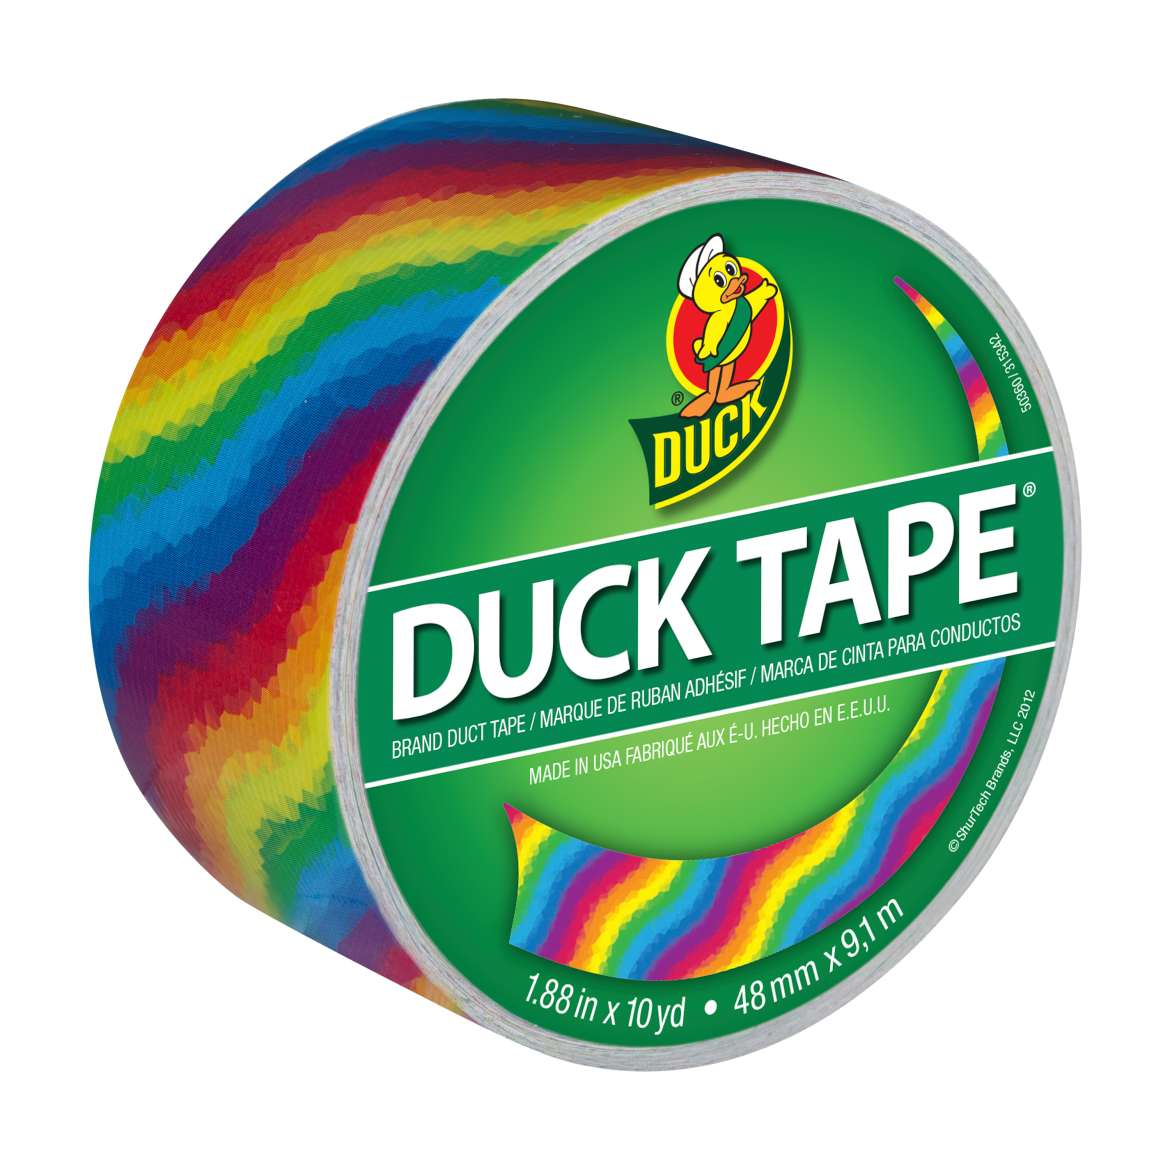 Duck Brand Duct Tape, 1.88 in. x 10 yds., Rainbow